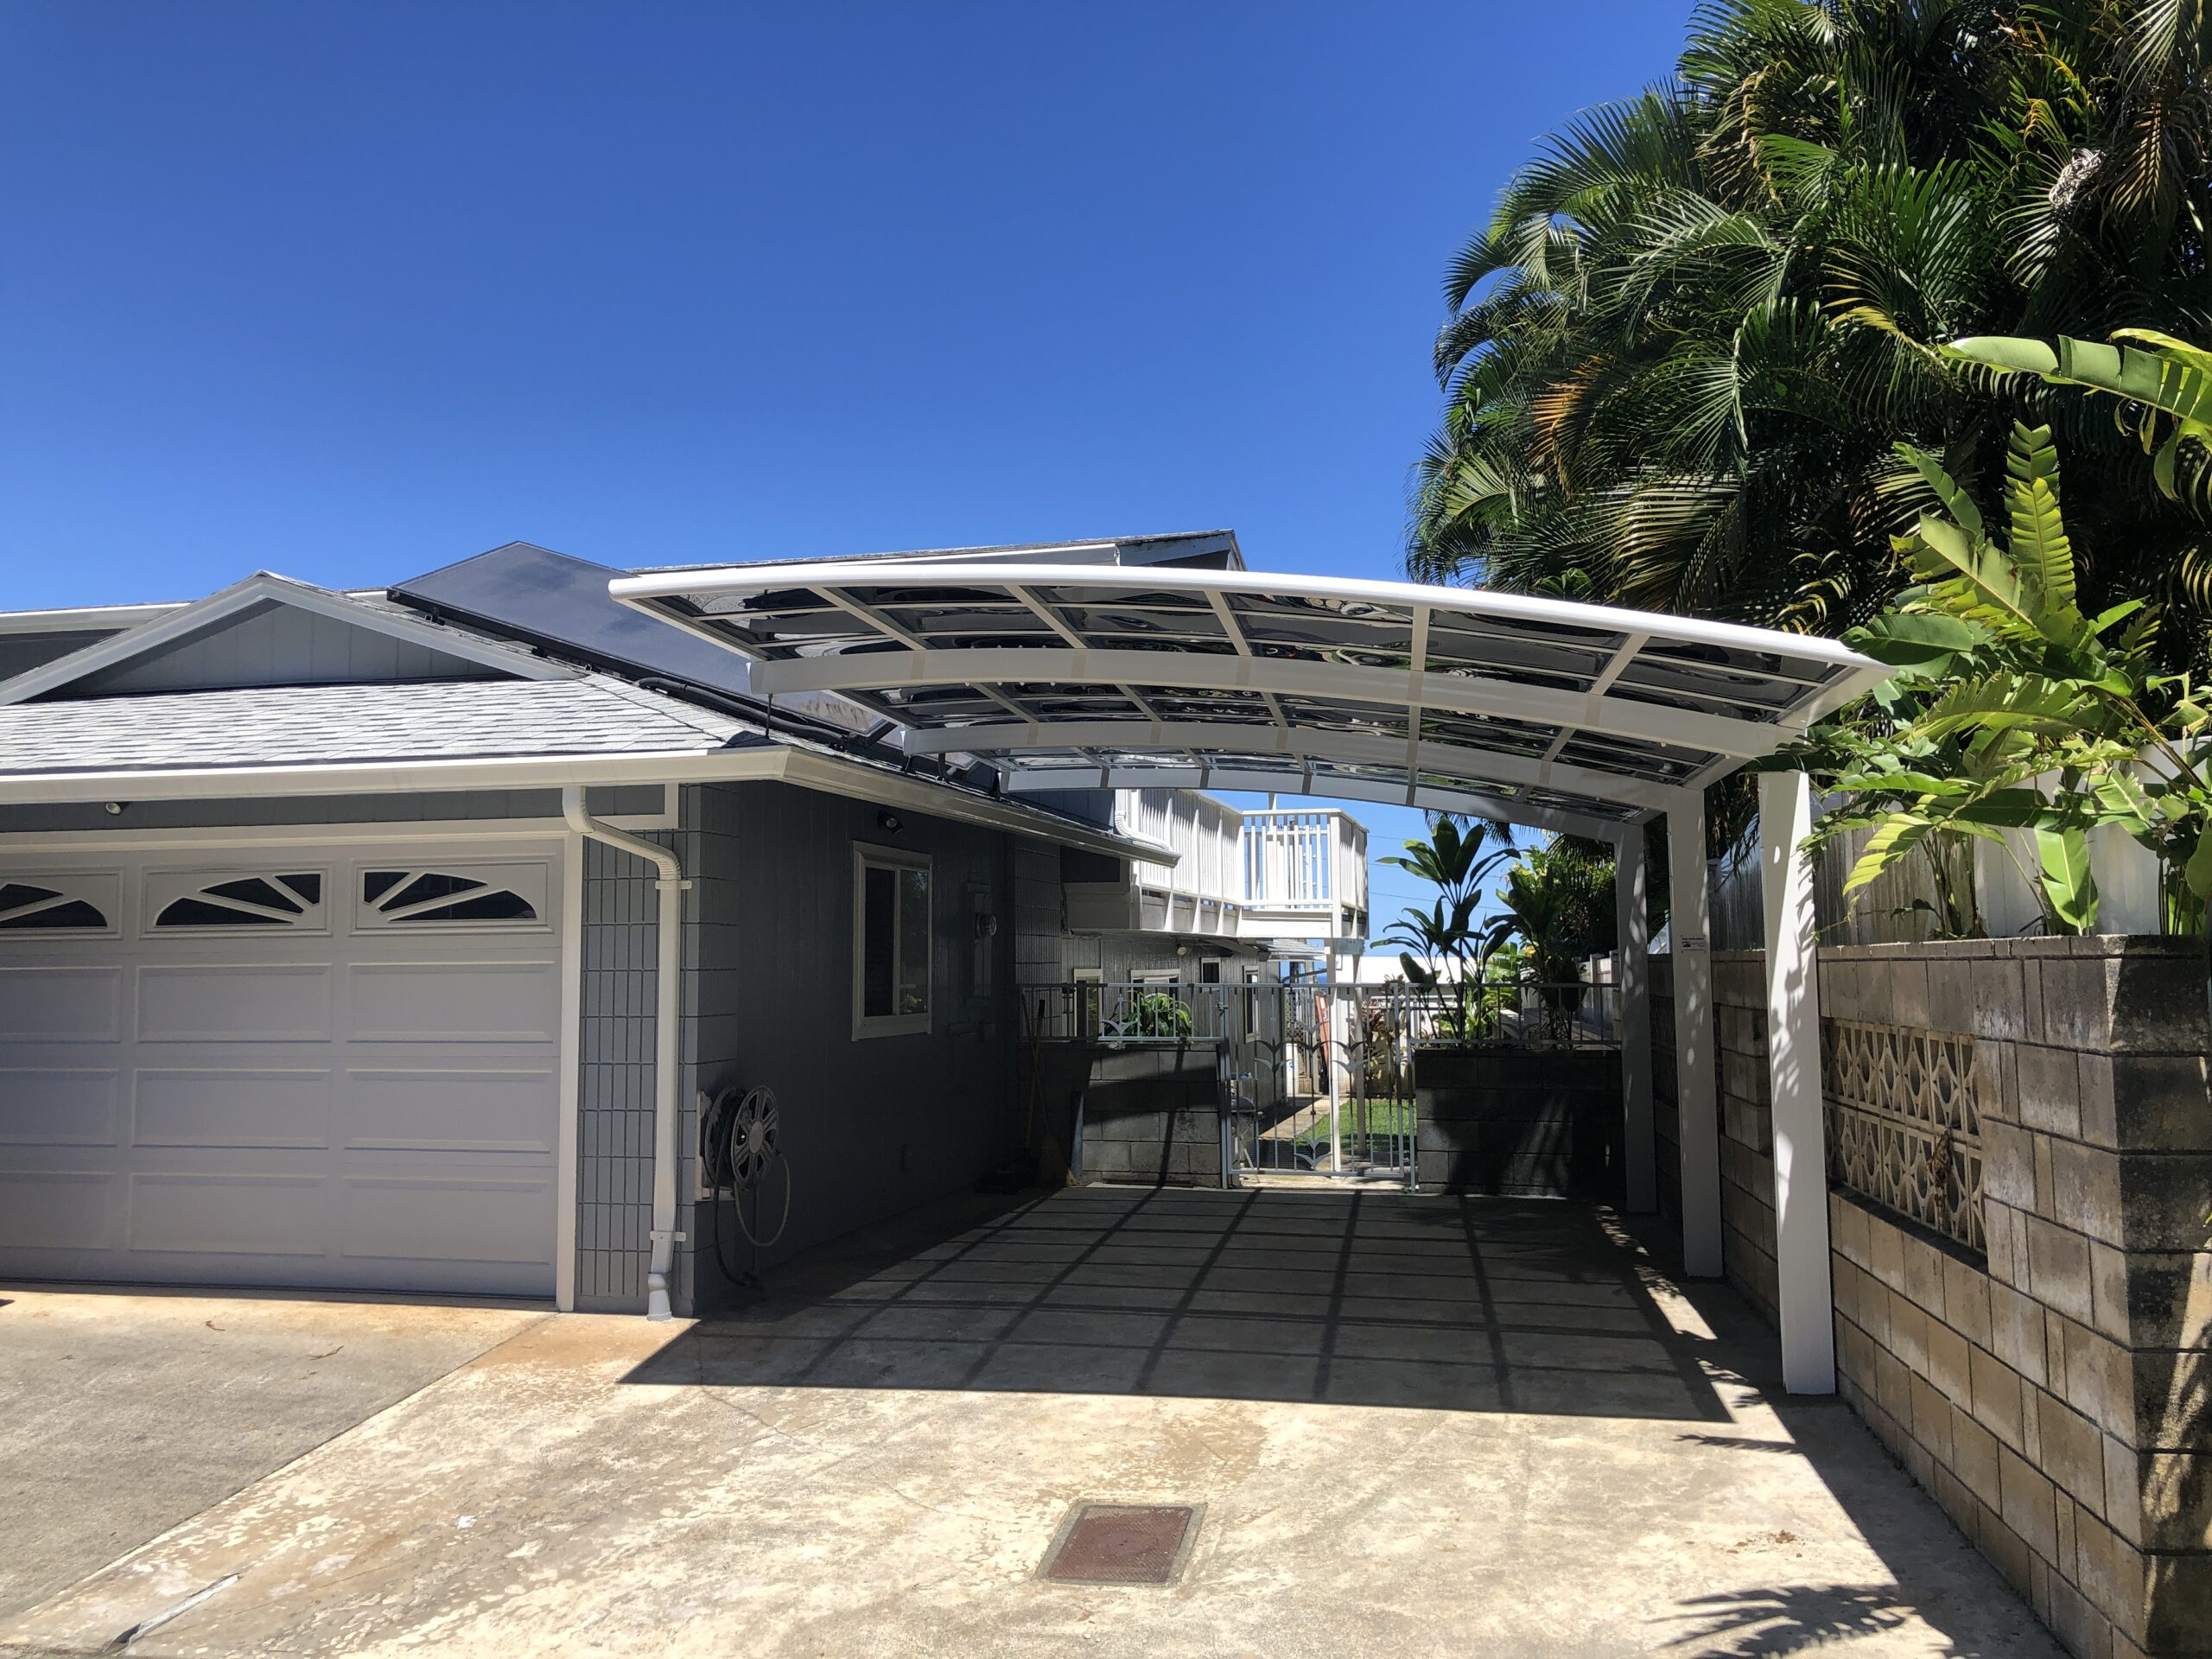 Carports Hawaii, custom carport structure, white aluminum frame with dark polycarbonate roof panels